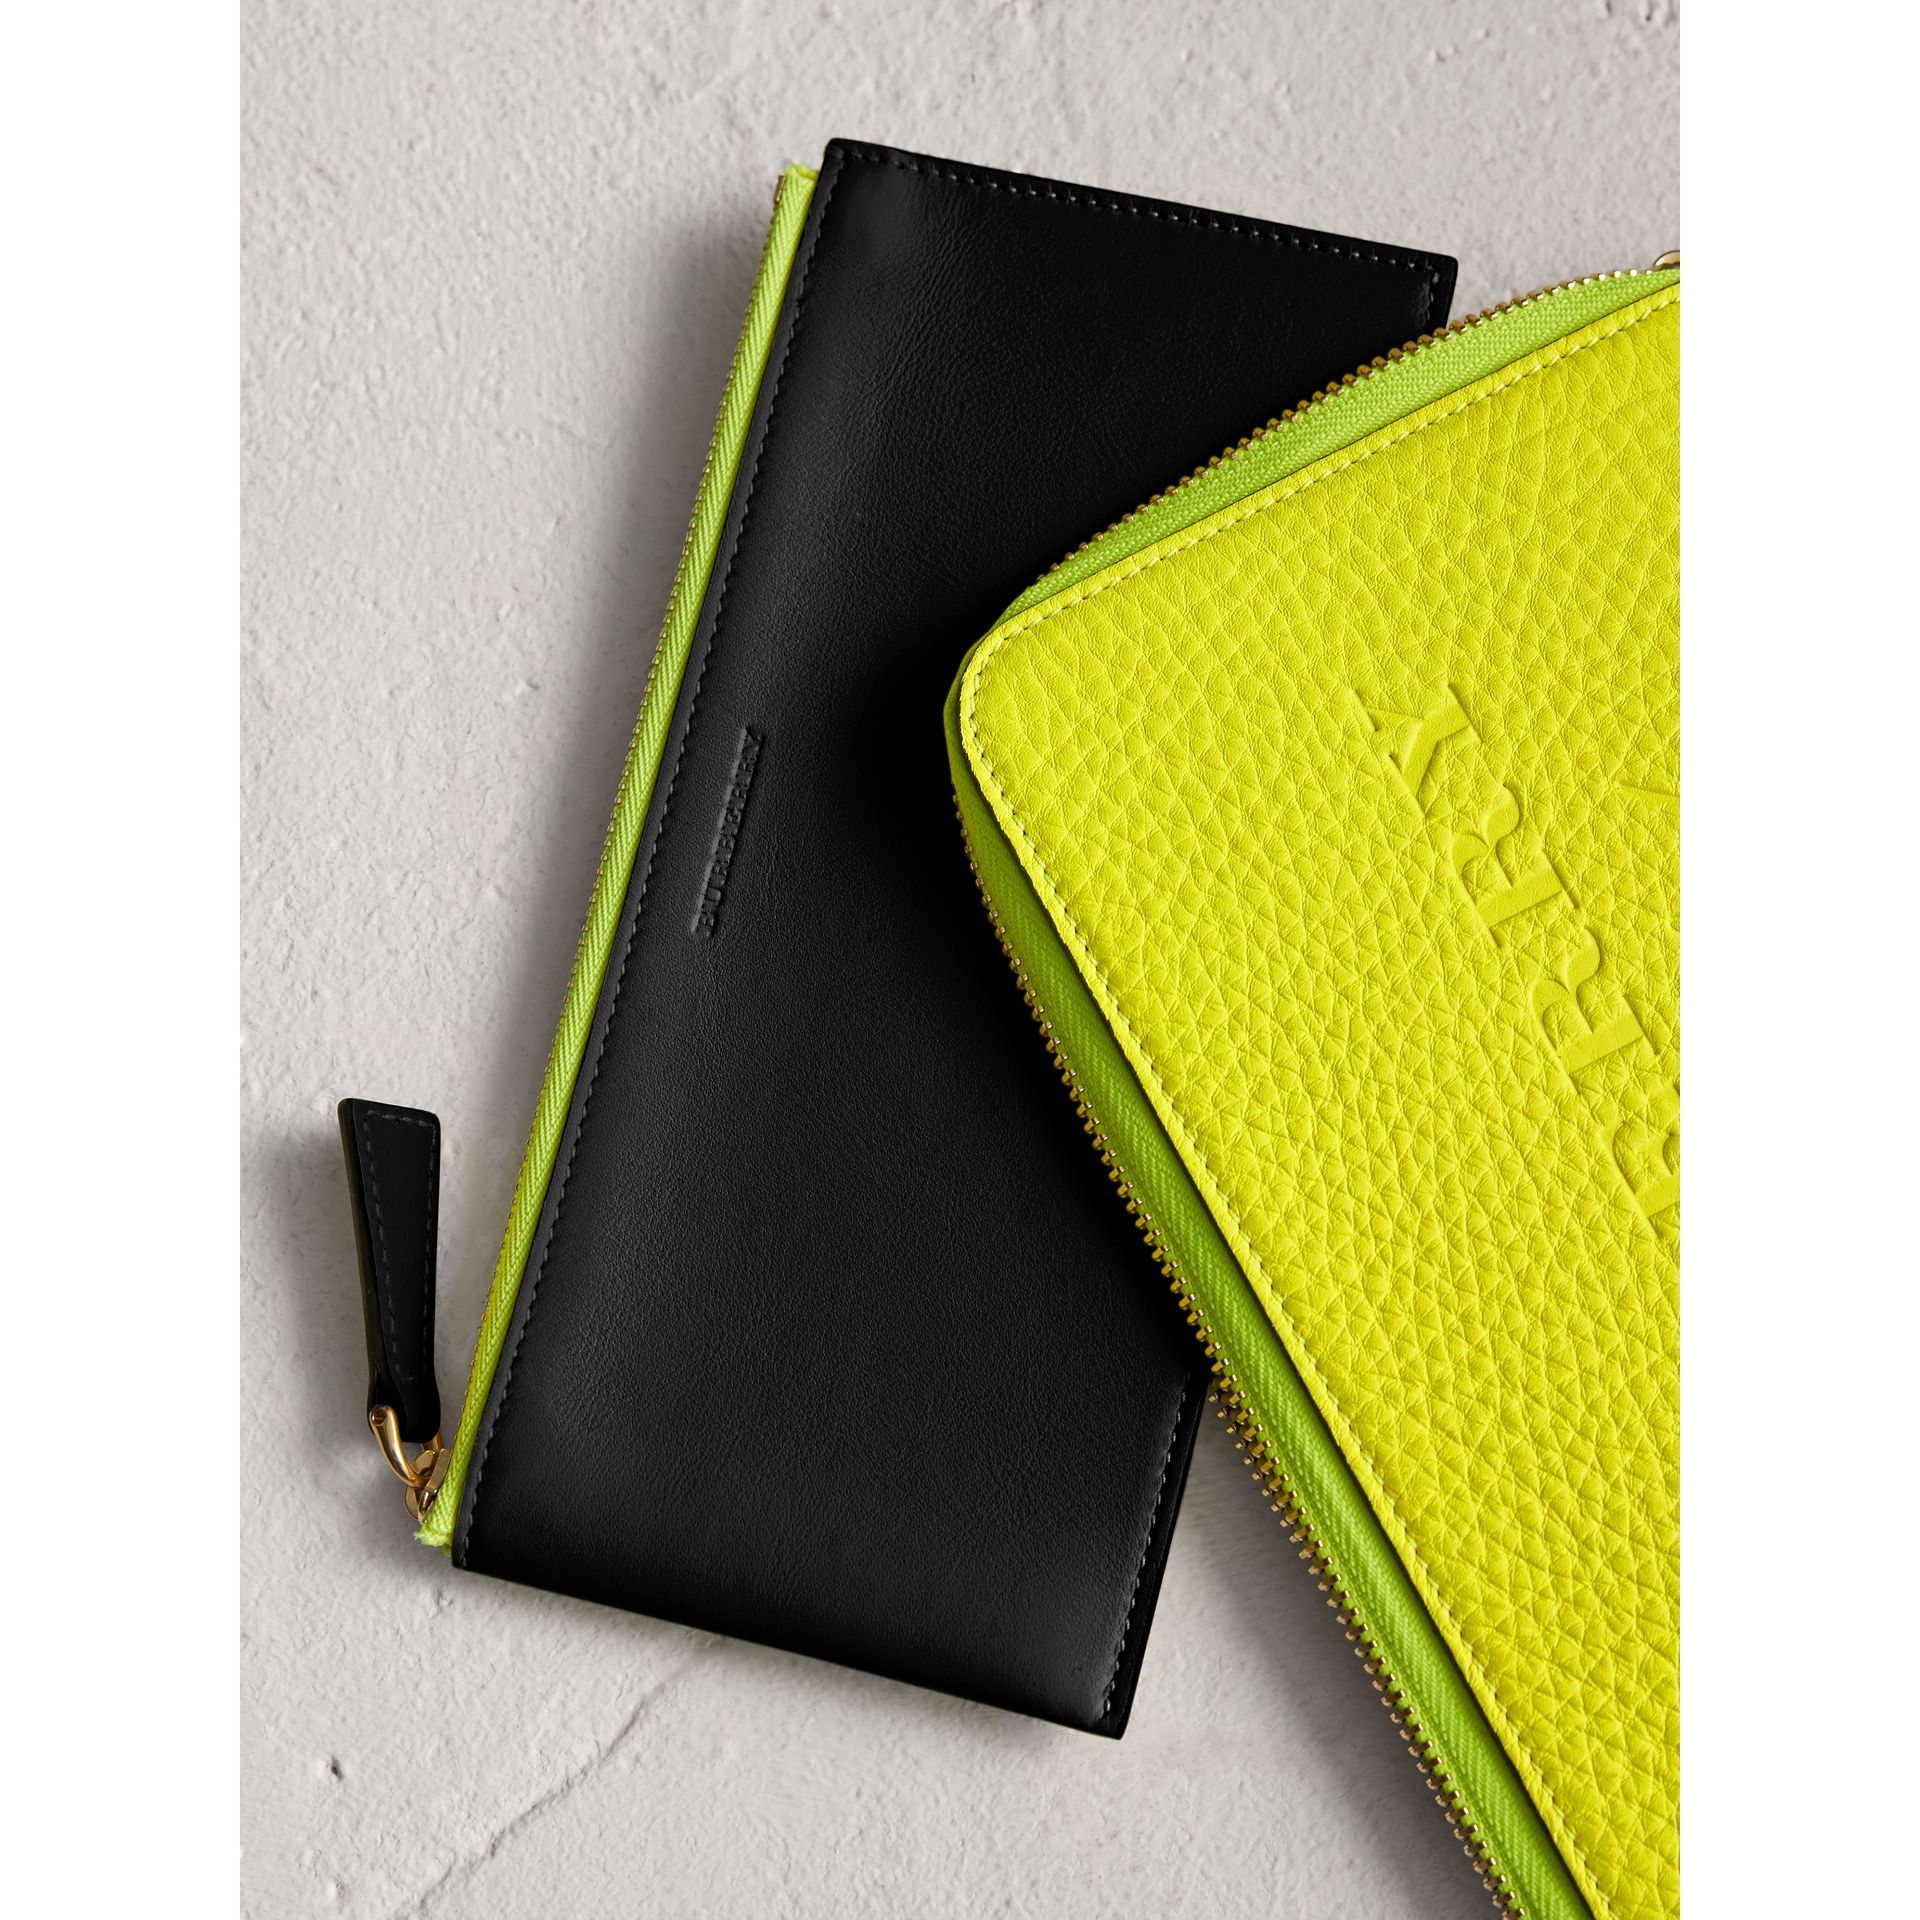 Burberry Embossed Leather Zip Around Wallet: Embossed Neon Leather Travel Wallet In Bright Yellow